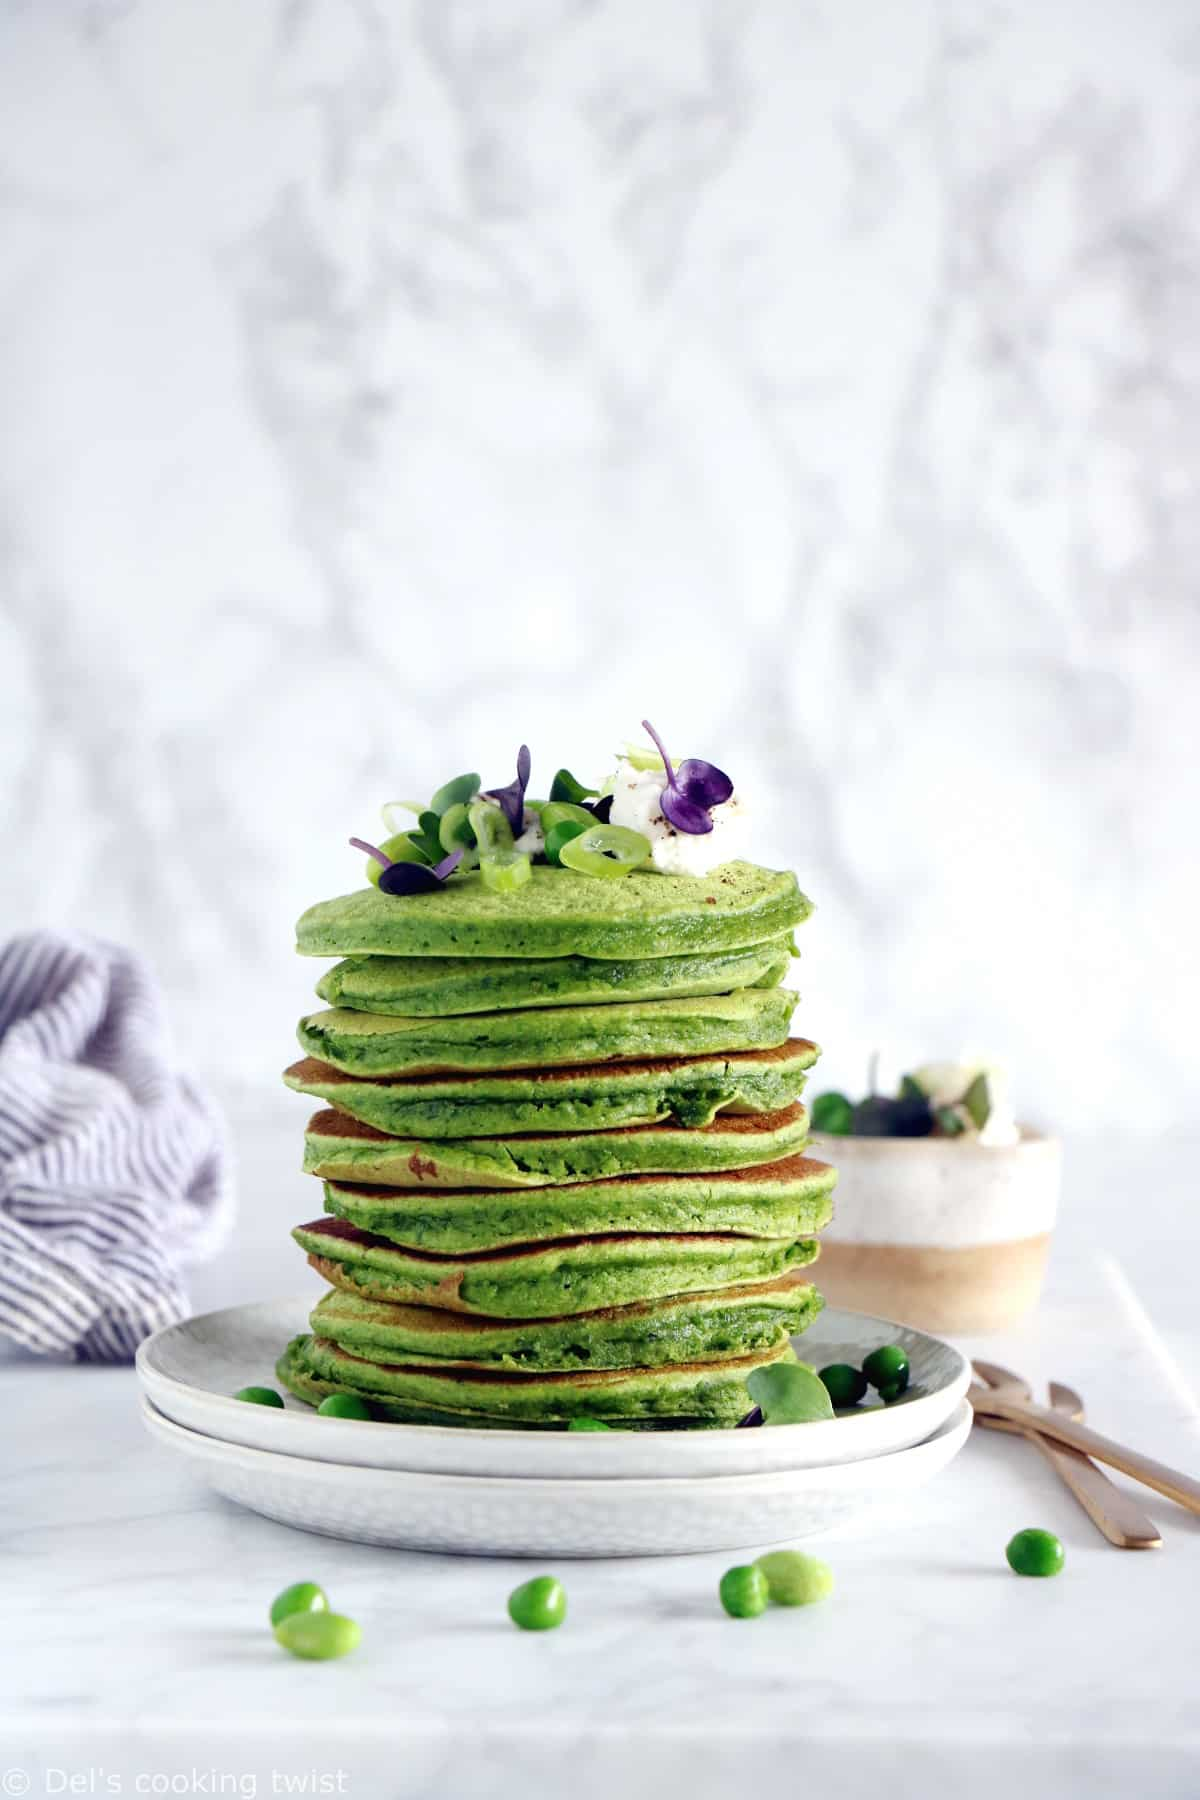 These healthy spinach chickpea pancakes are the perfect green pancakes recipe you were looking for all along. Made right in the blender, they are healthy, nutritious, loaded with leafy greens, and also naturally gluten-free and dairy-free. Baby and toddler approved!